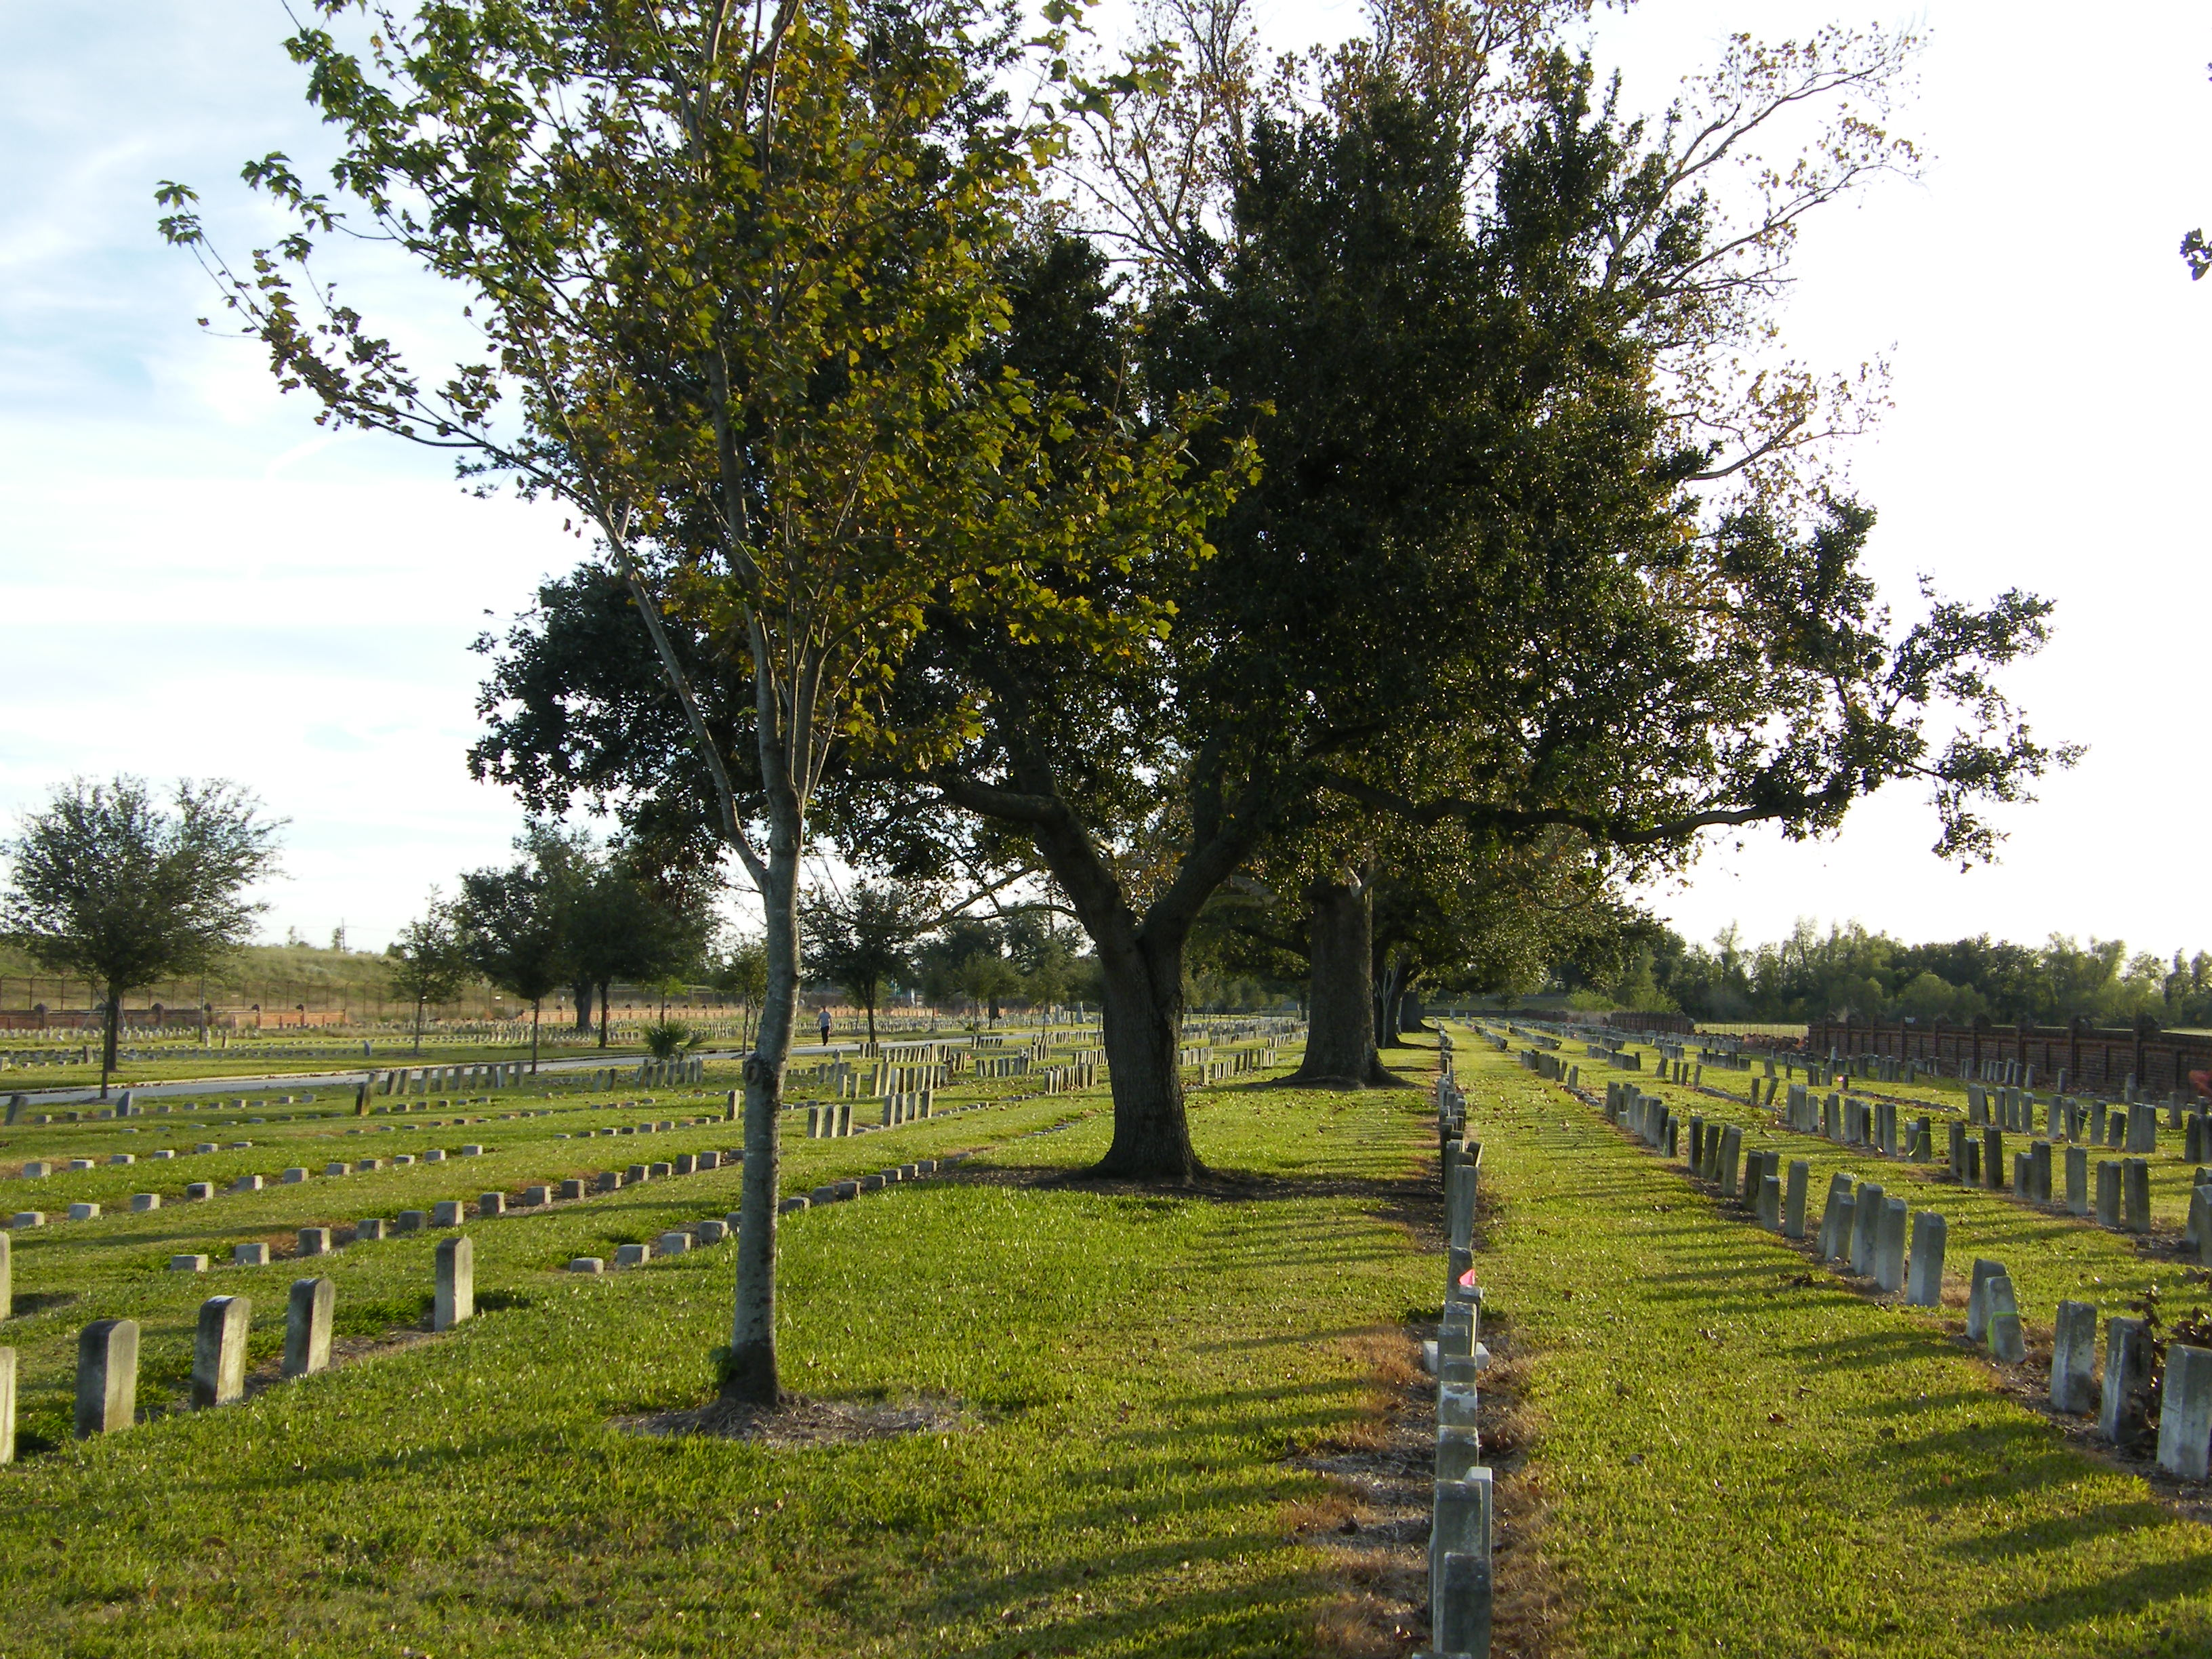 The site is also home to the Chalmette National Cemetery.